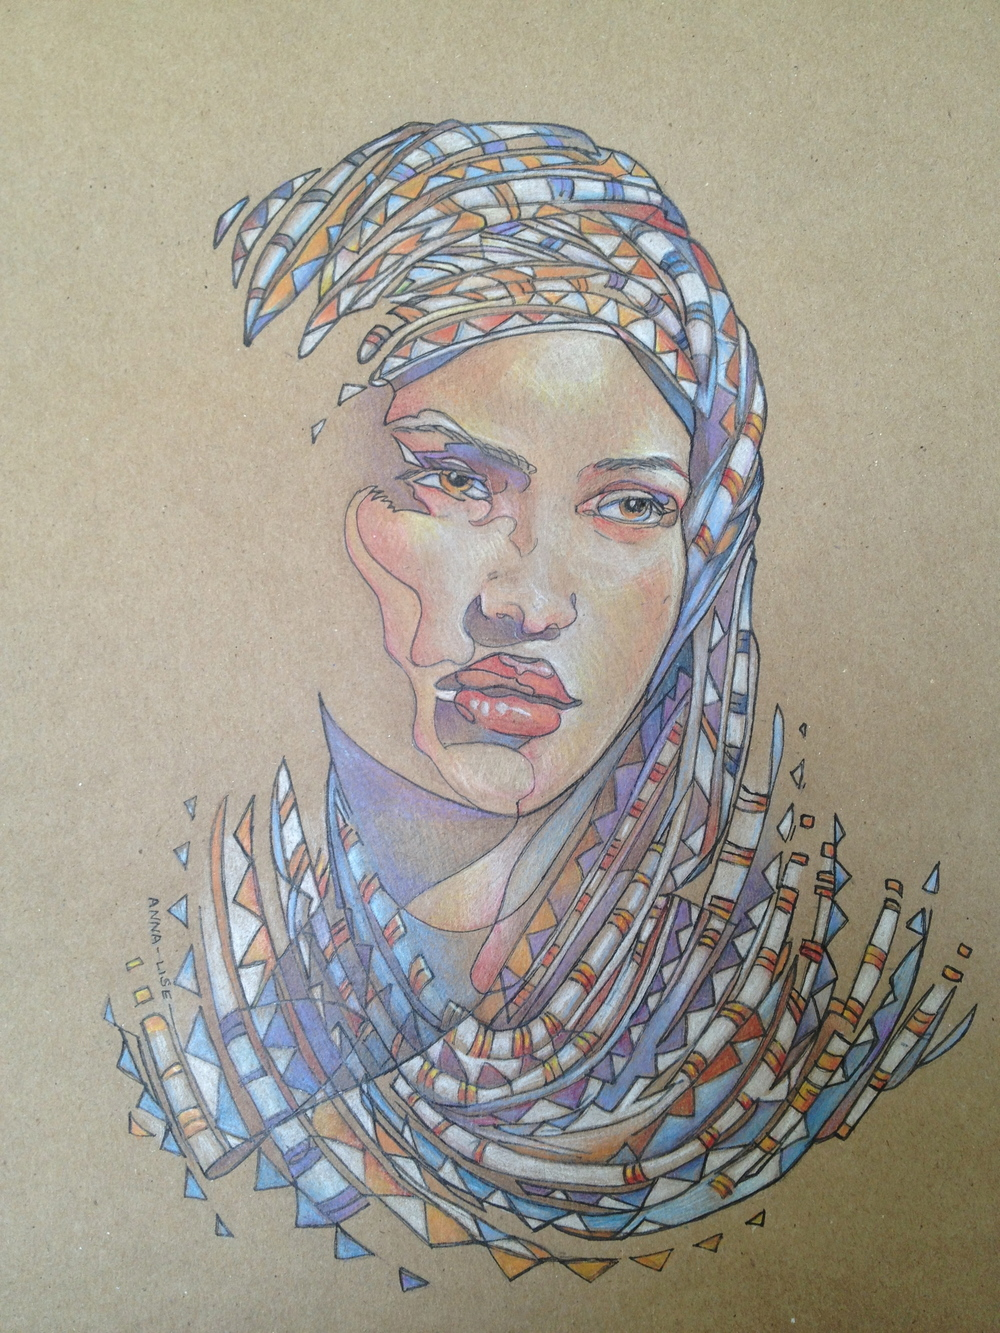 Color pencil and ink on paper bag  -  'Skjert'  -  18 x 24 in.  -  by Anna-Lise of She's in the Studio